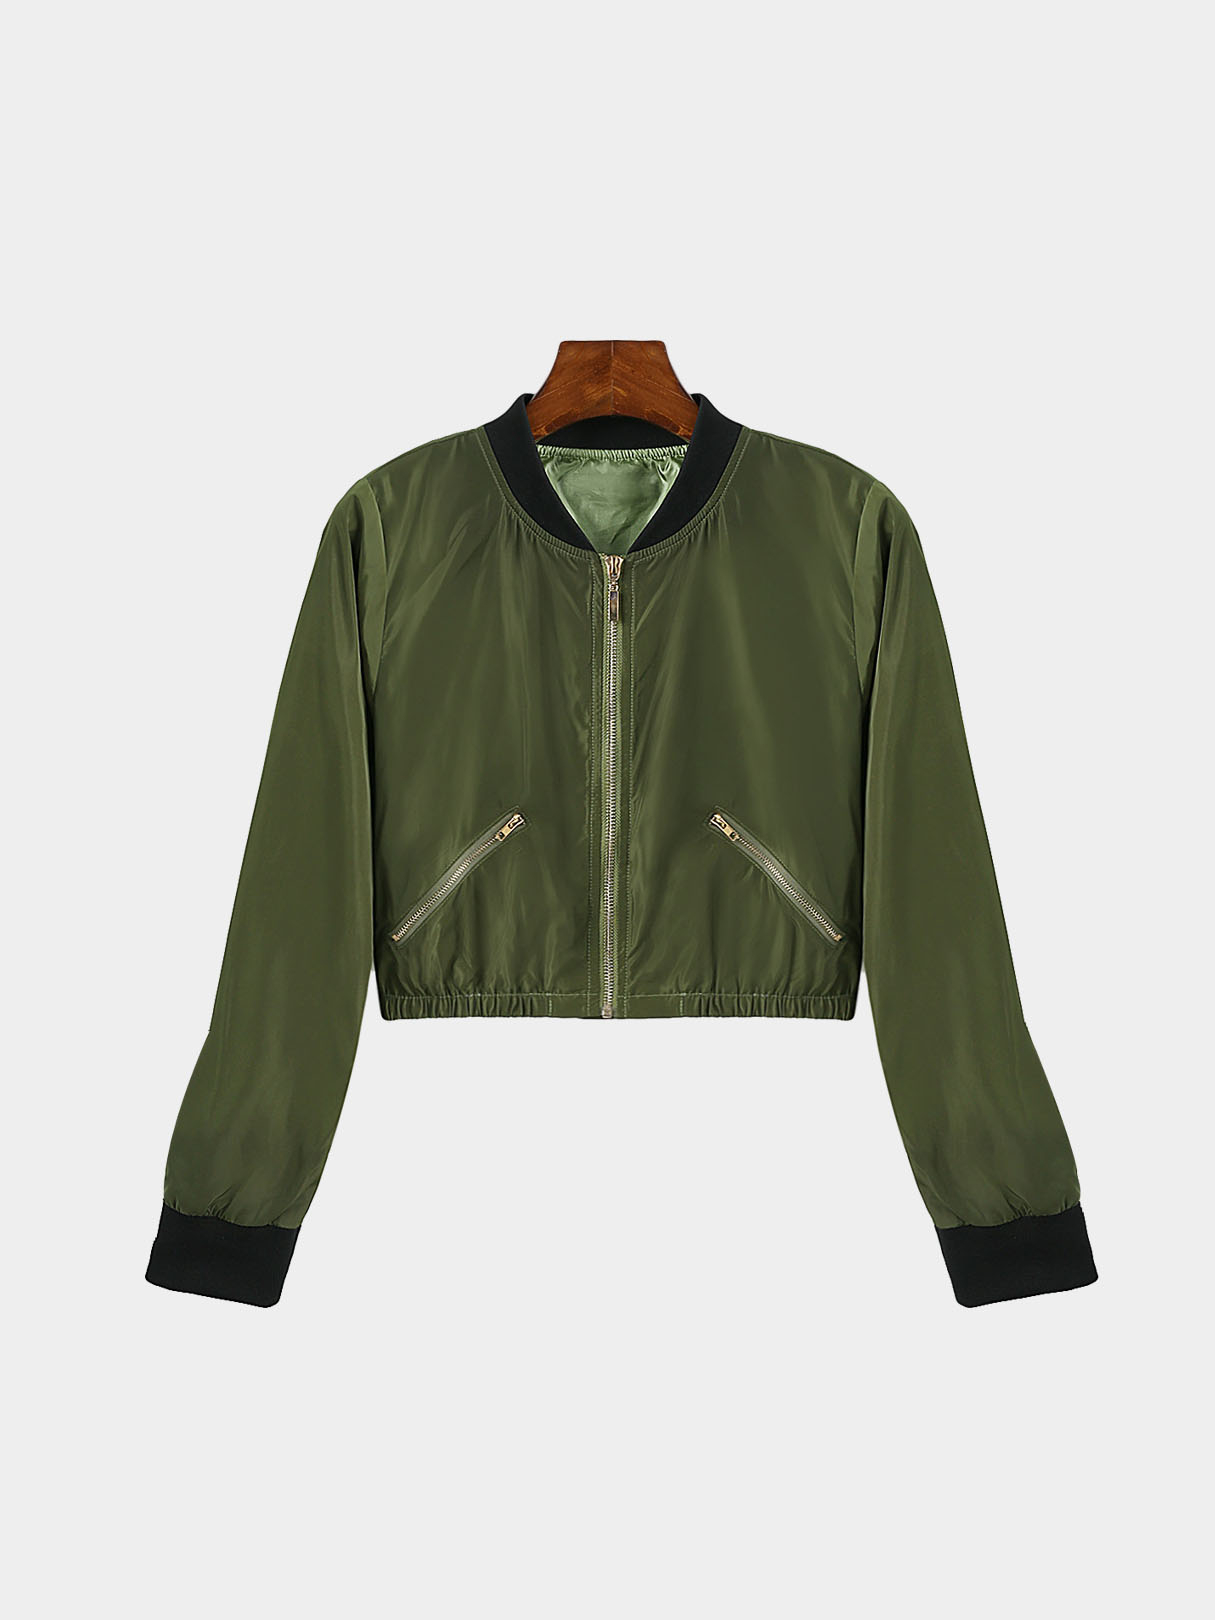 Army Green Chimney Collar Zipper Front Jacket With Side Zippers